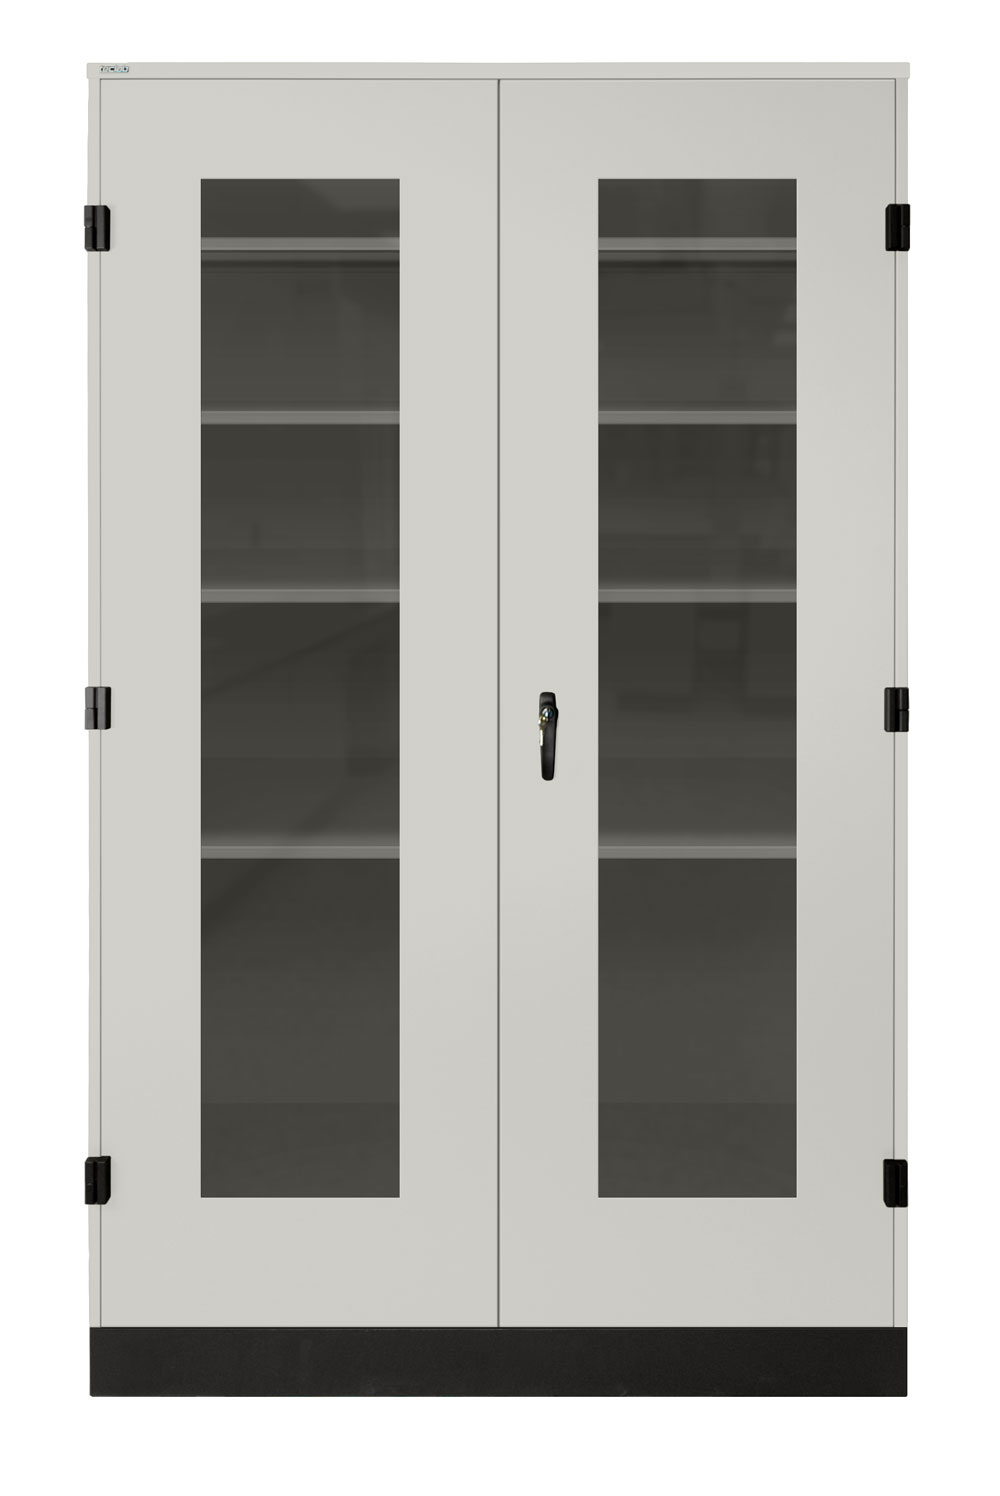 Tall Storage Cabinets From Teclab